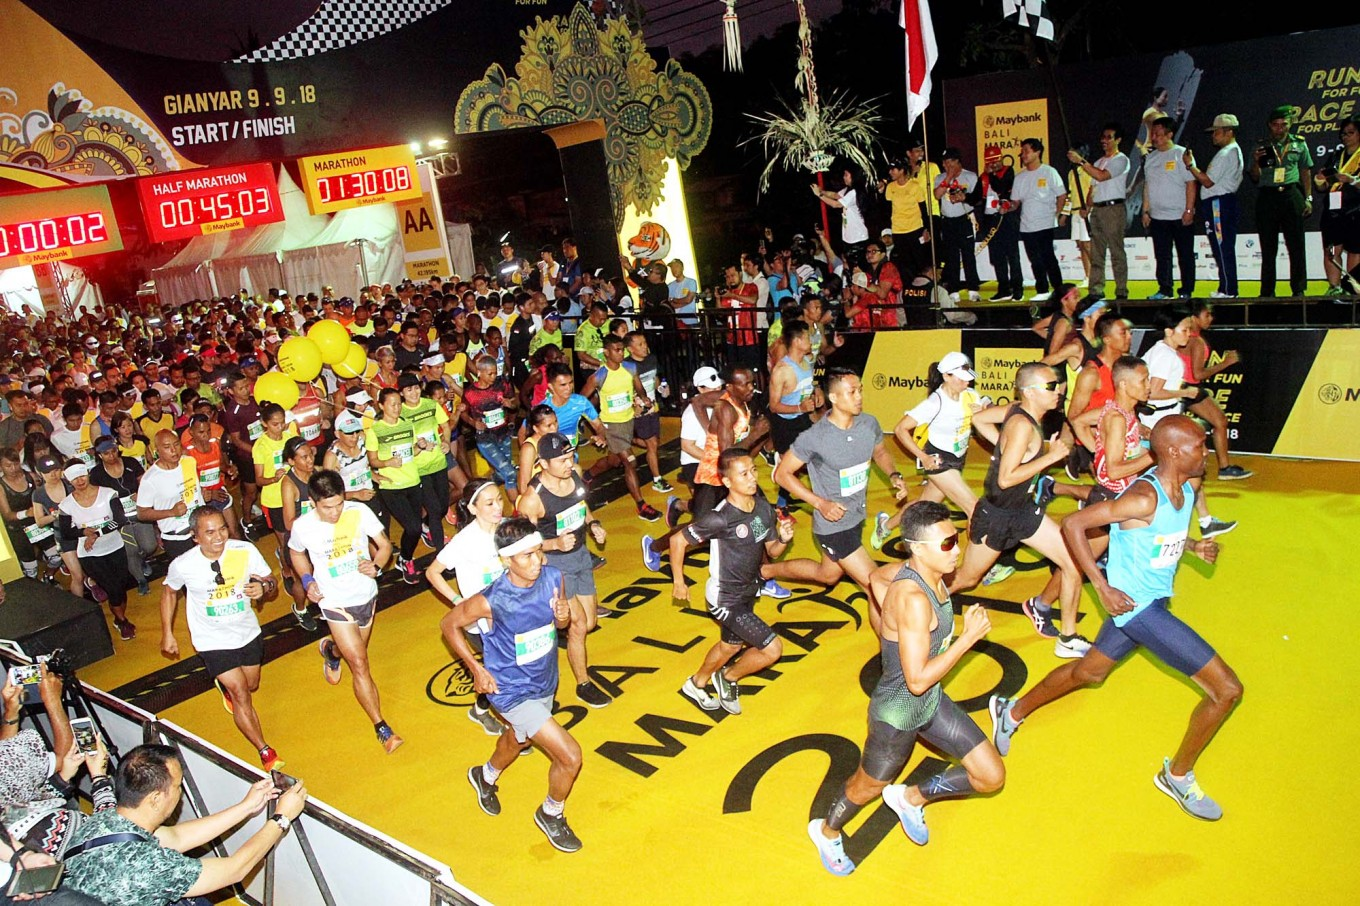 Early start: The sky is still dark at 4:30 a.m., but around 10,000 runners from 46 countries are at the starting line of the 2018 Maybank Bali Marathon on Sept. 9, ready to take on the course ahead of them. The annual race, which  Maybank Indonesia has organized since 2012, comprises a full marathon, half marathon, a 10-kilometer race, as well as wheelchair and children's sprint categories that cover Gianyar and Klungkung regencies, Bali.